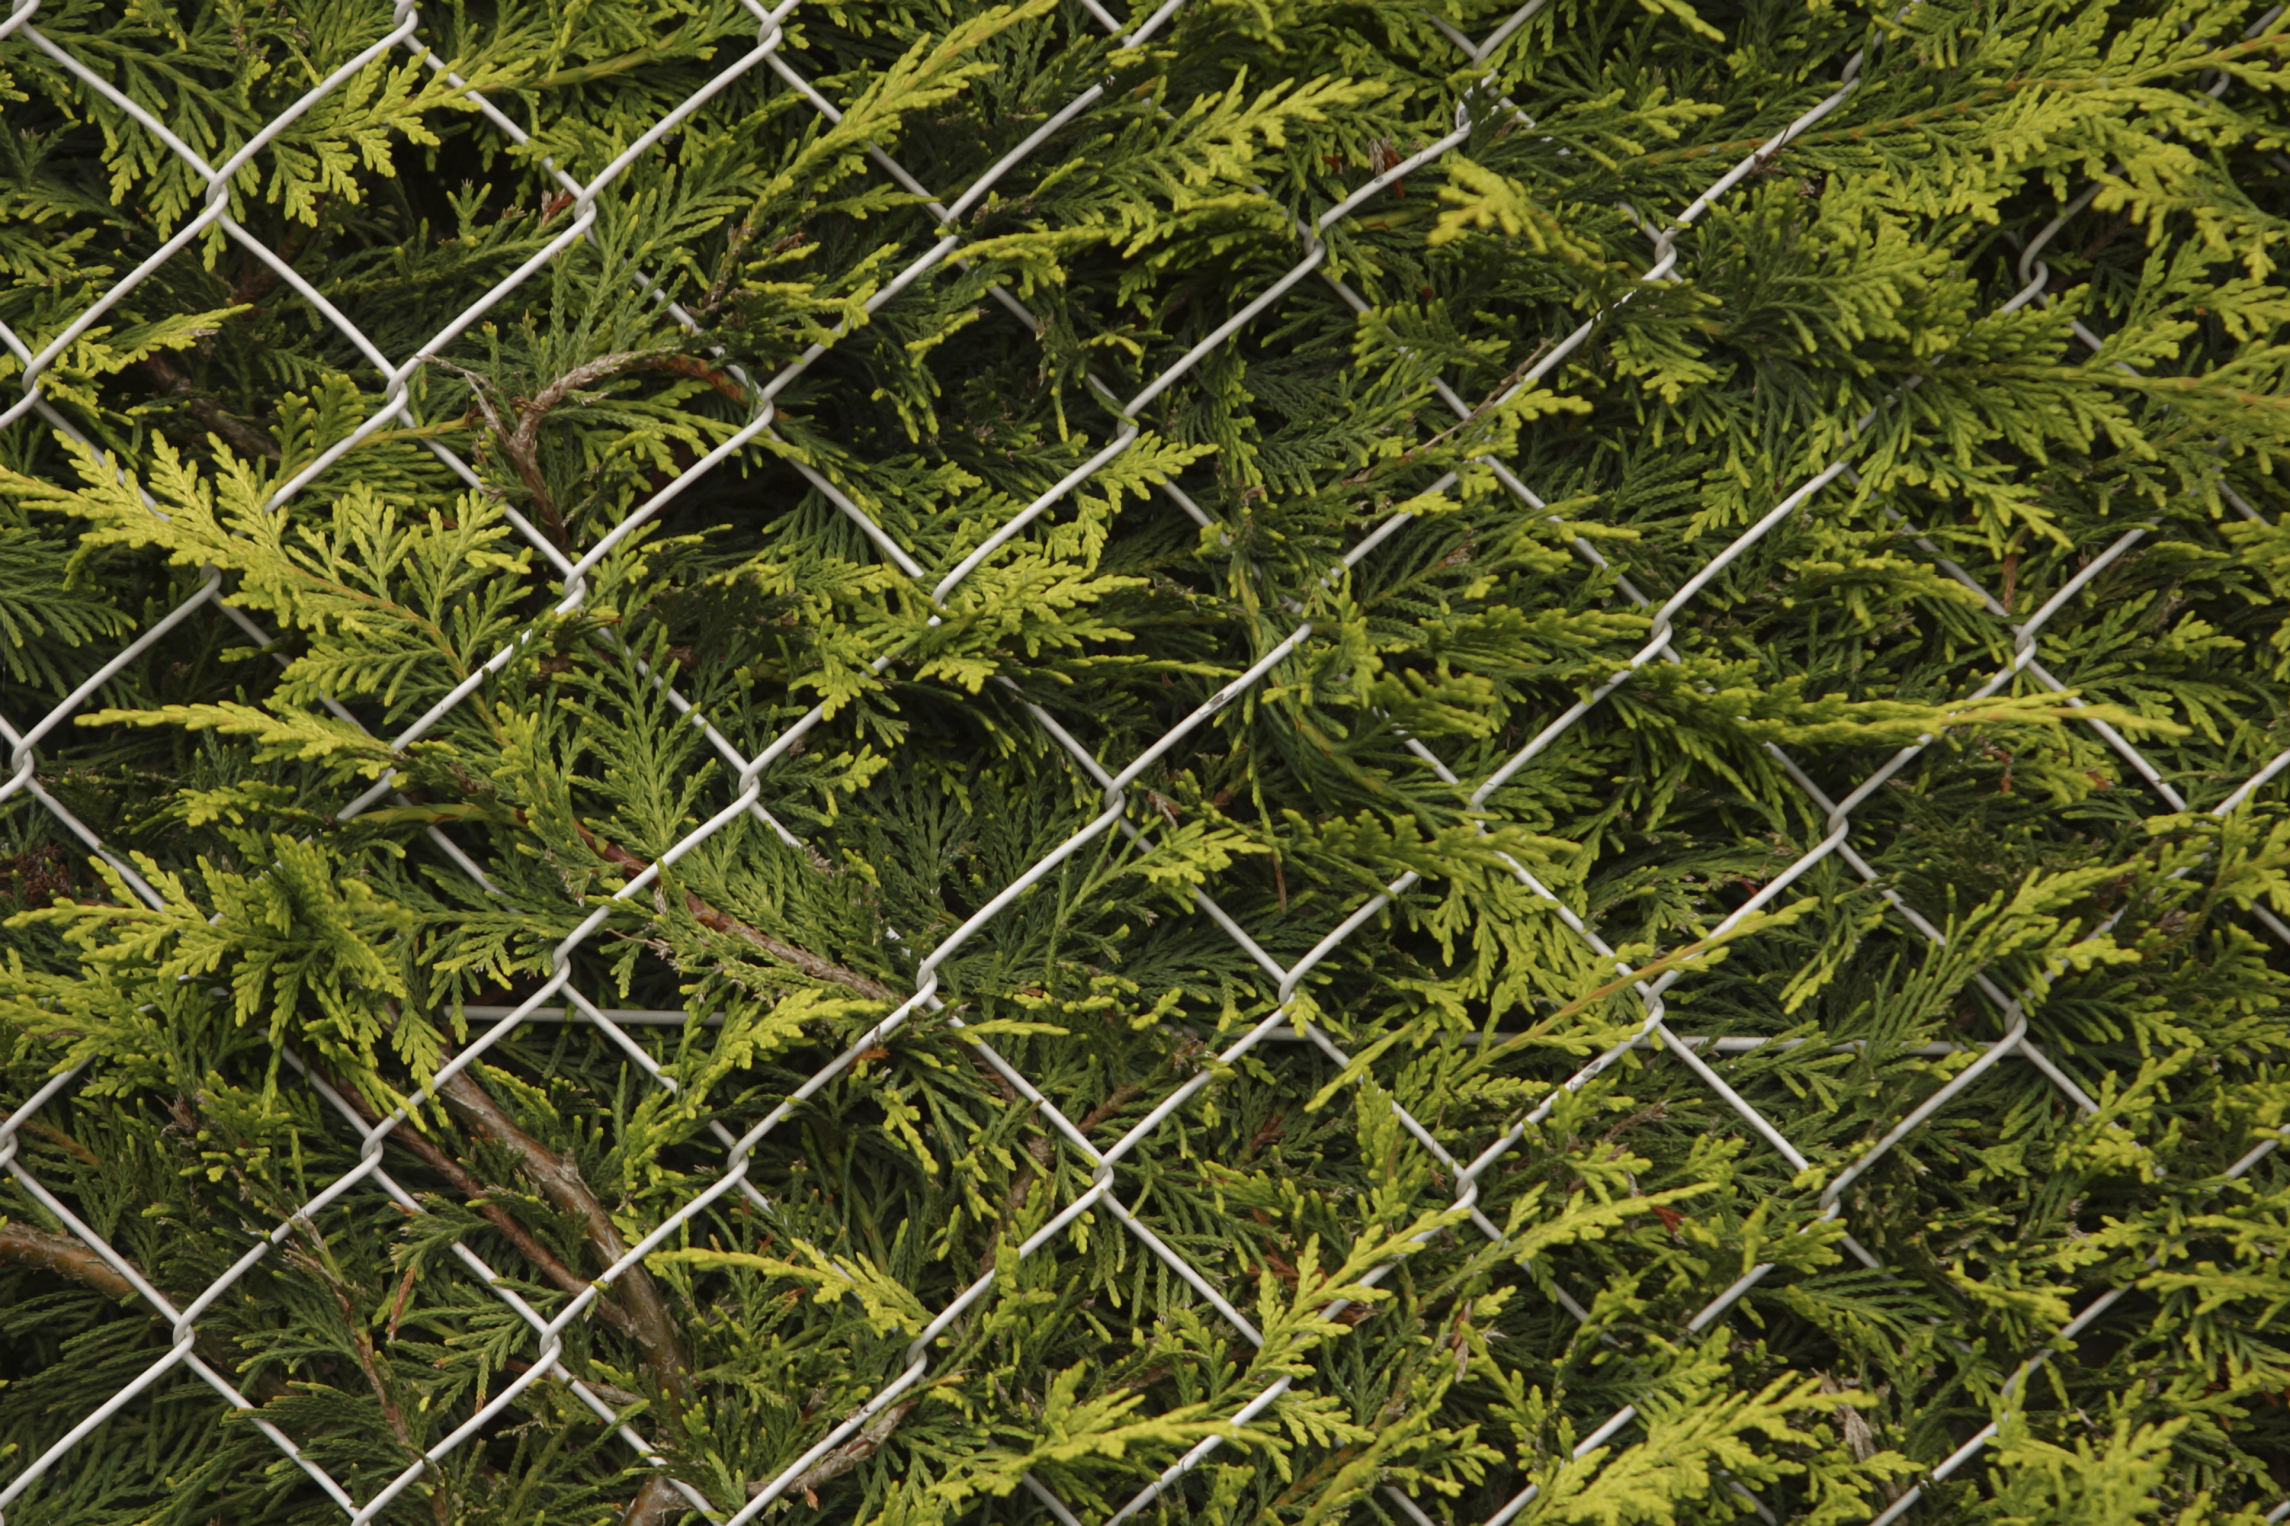 Can You Legally Cut Branches Hanging Over Your Property Line